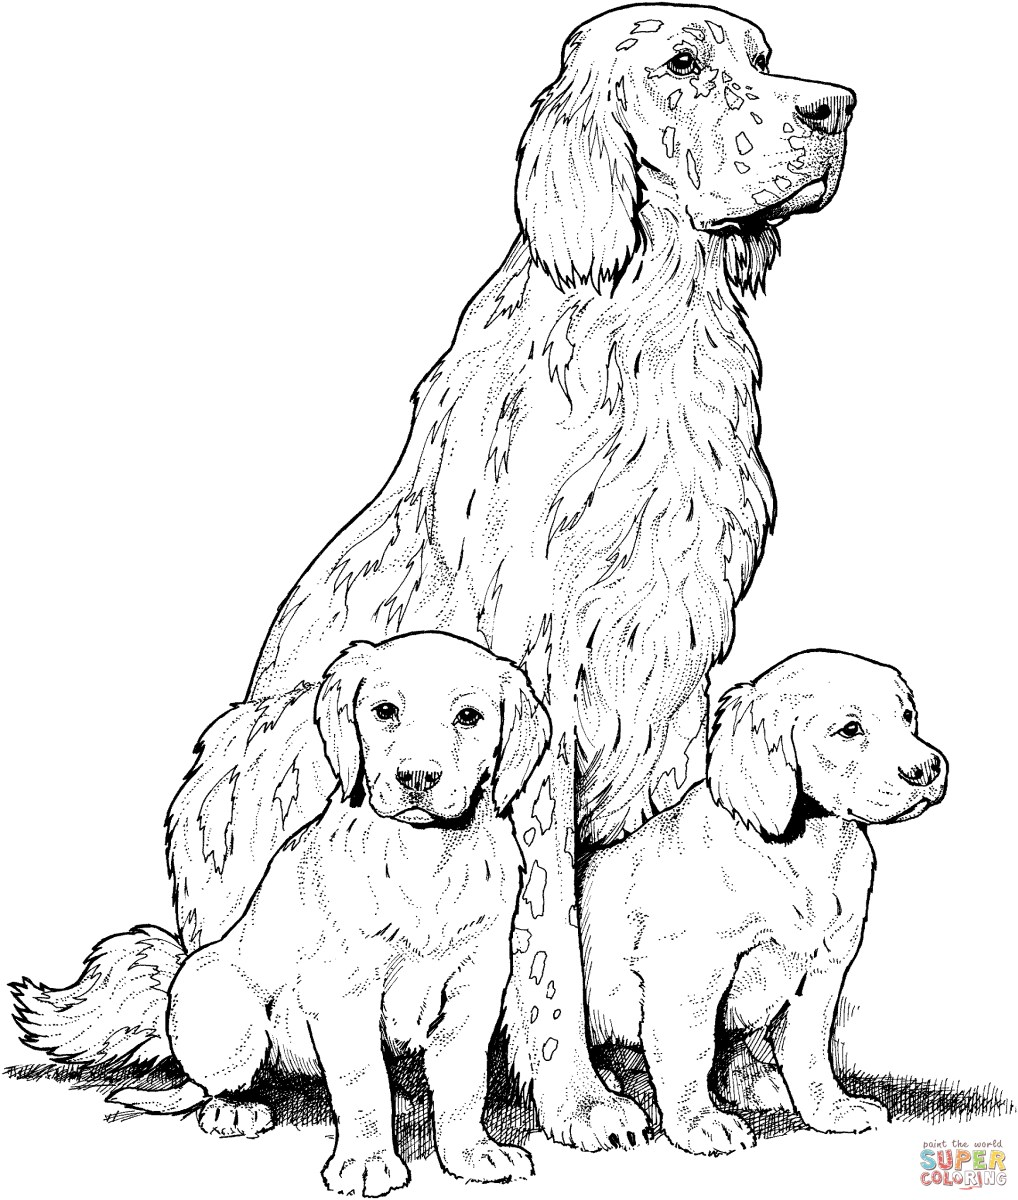 Dog Coloring Page Dogs Coloring Pages Free Coloring Pages - birijus.com